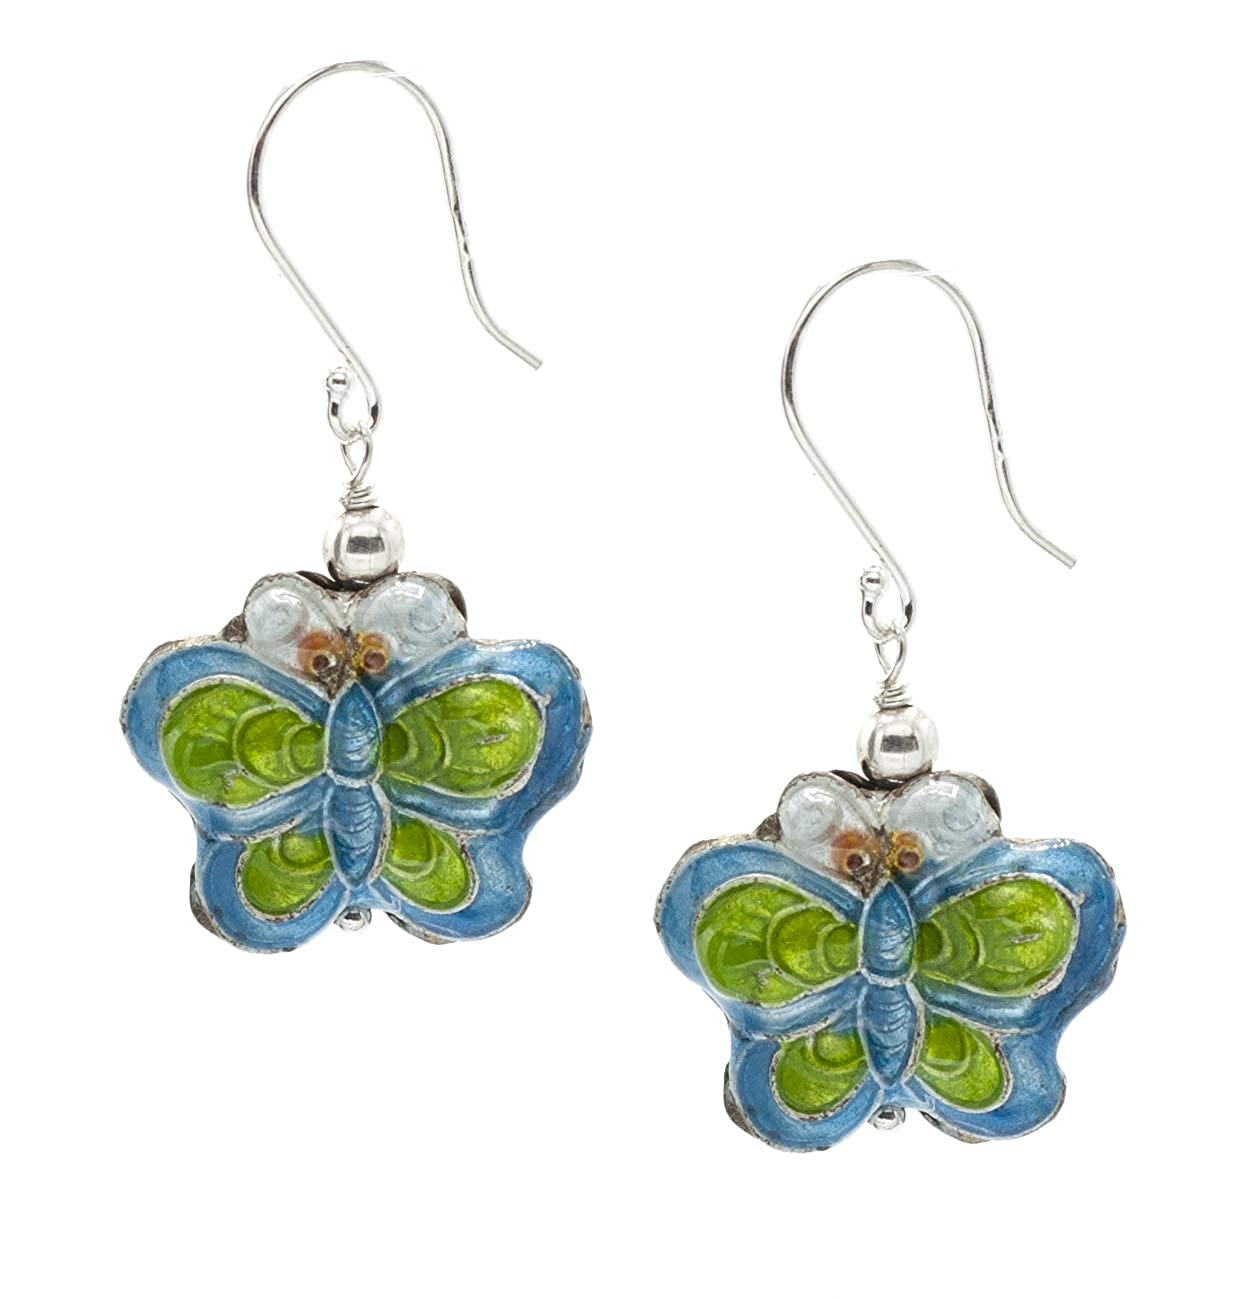 Sterling Silver Fishook Earrings with Blue//Green Butterfly-Shaped Cloisonnes